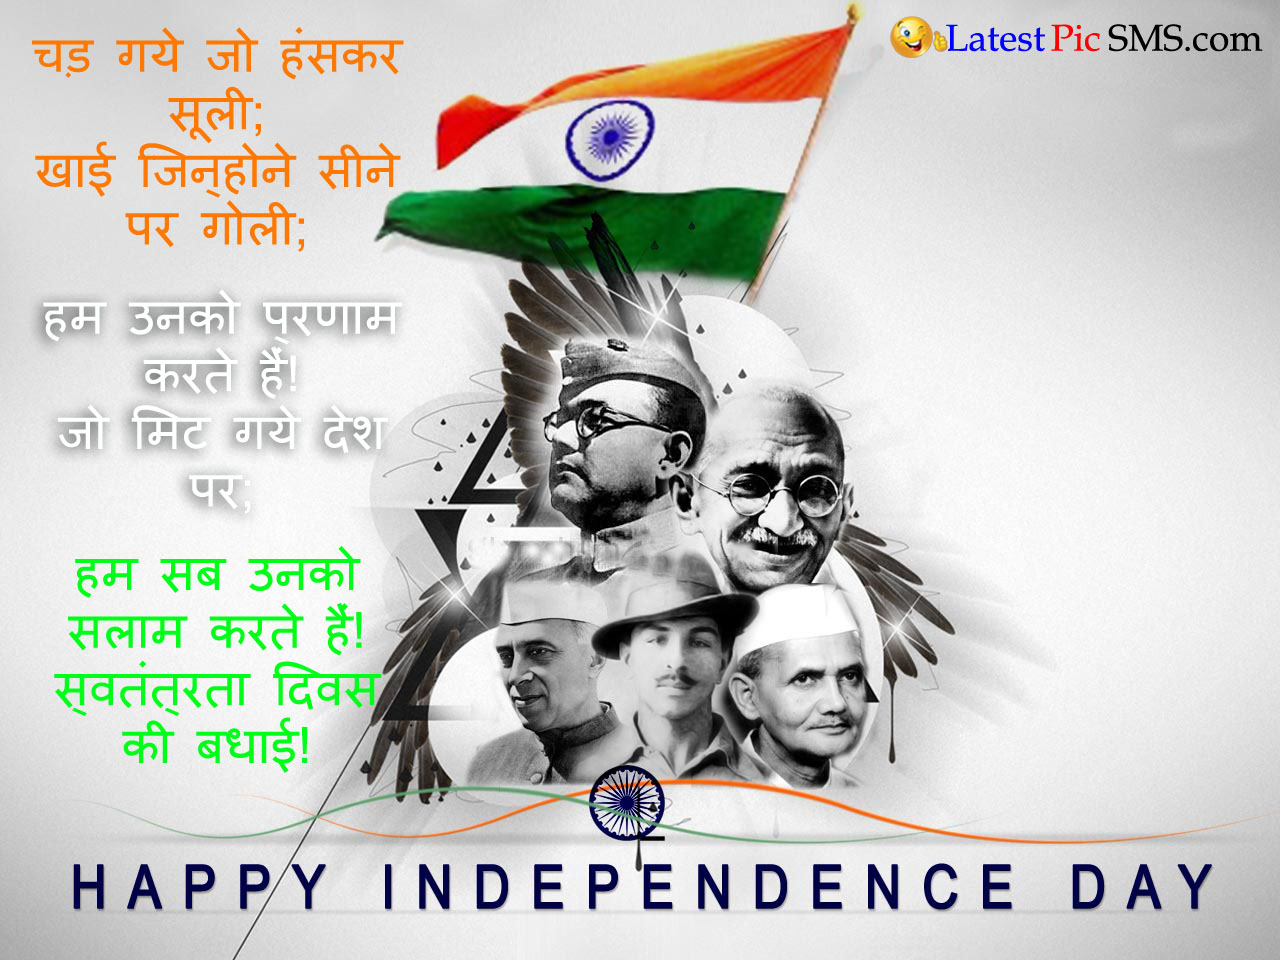 Independence Day speech in hindi font